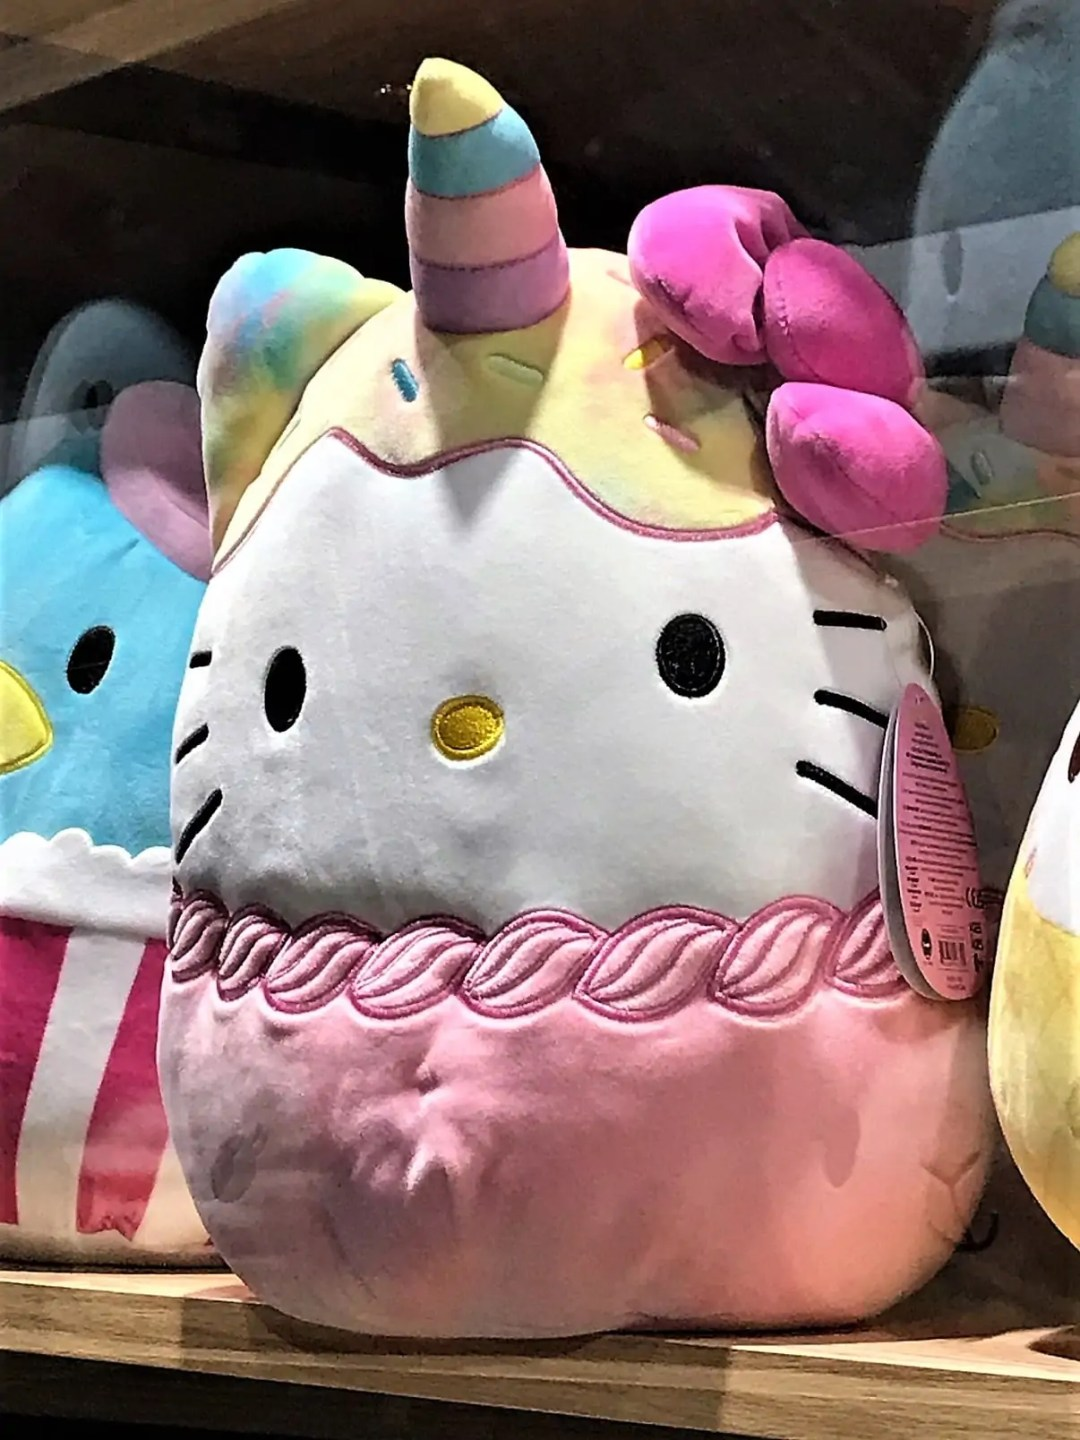 A Squishmallow stuffed toy with Hello Kitty's face, sprinkles, and a unicorn horn